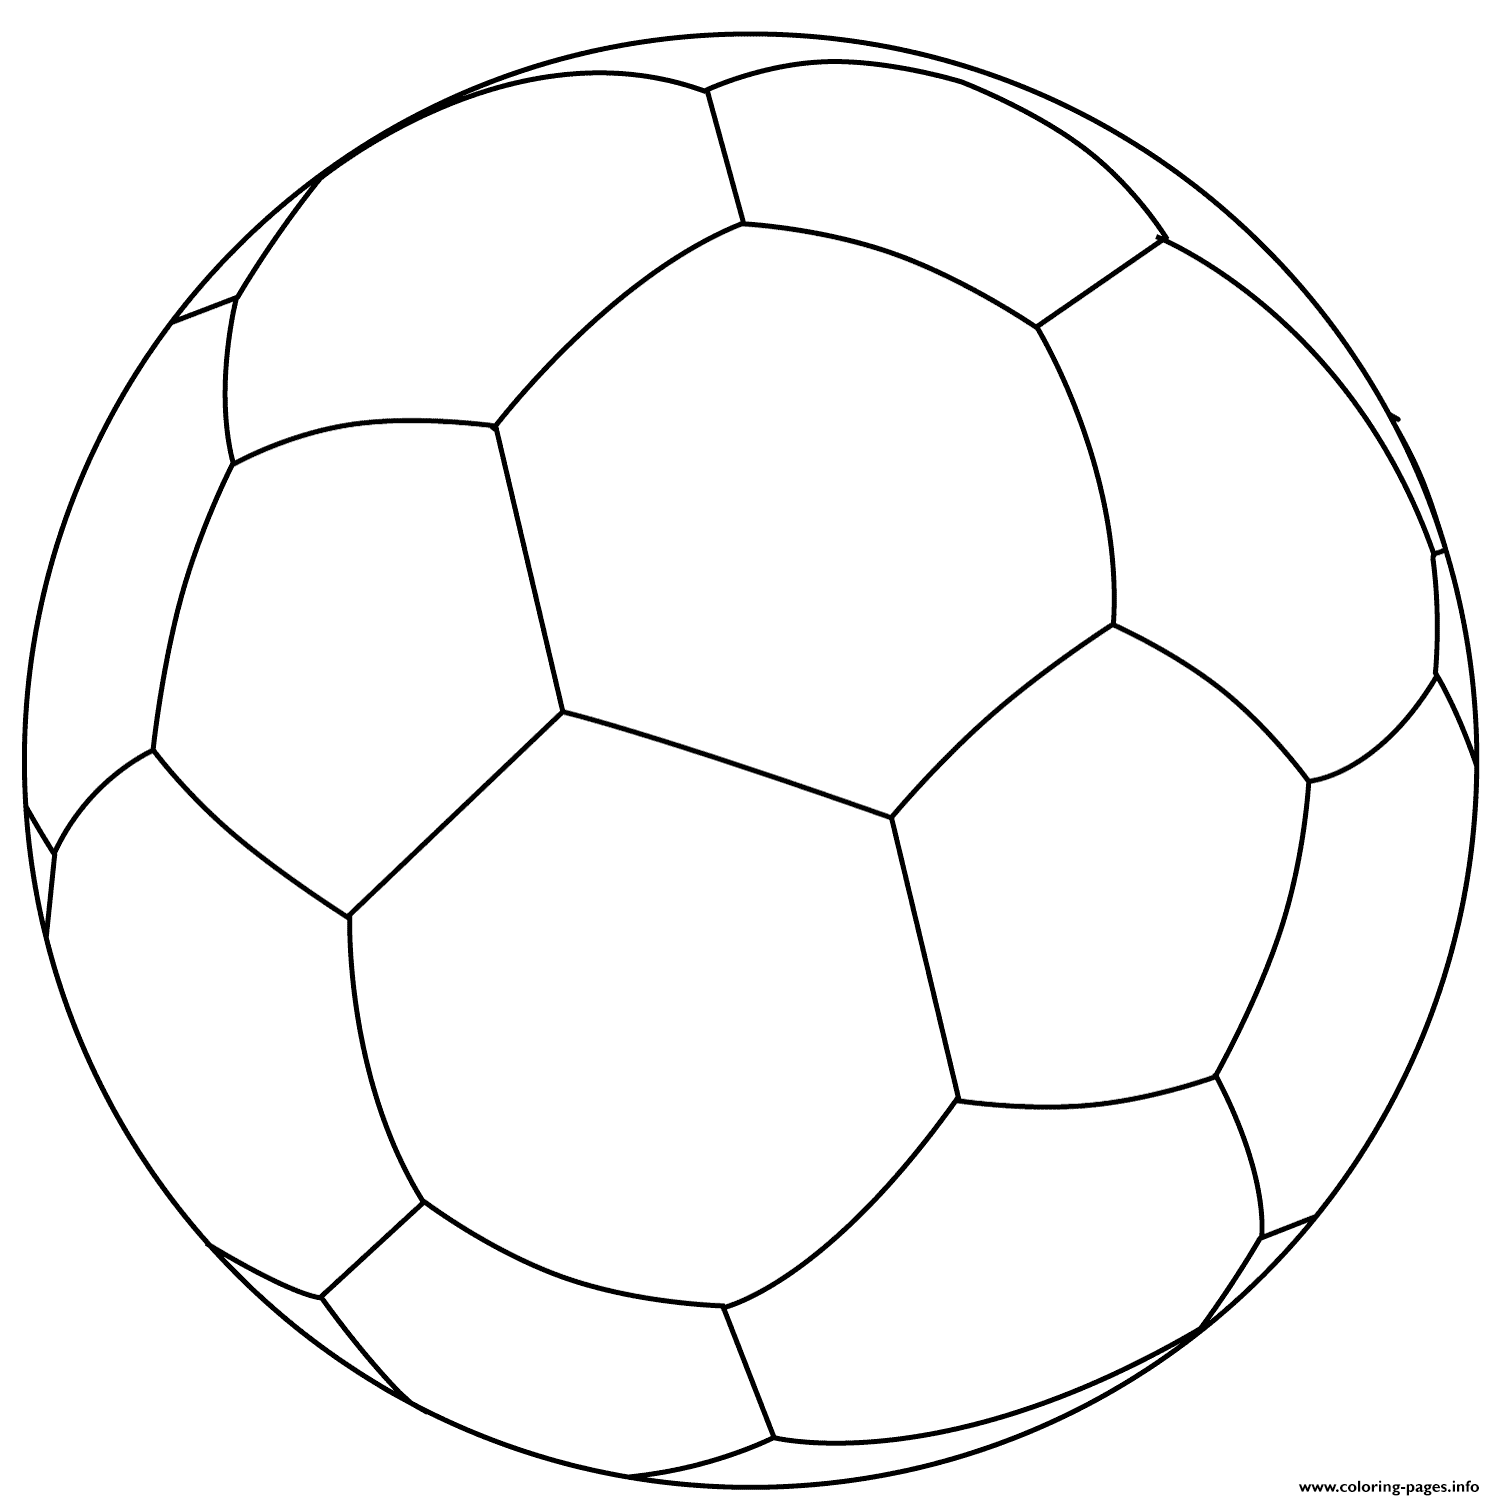 football pictures to colour and print printable football player coloring pages for kids and print football colour to pictures